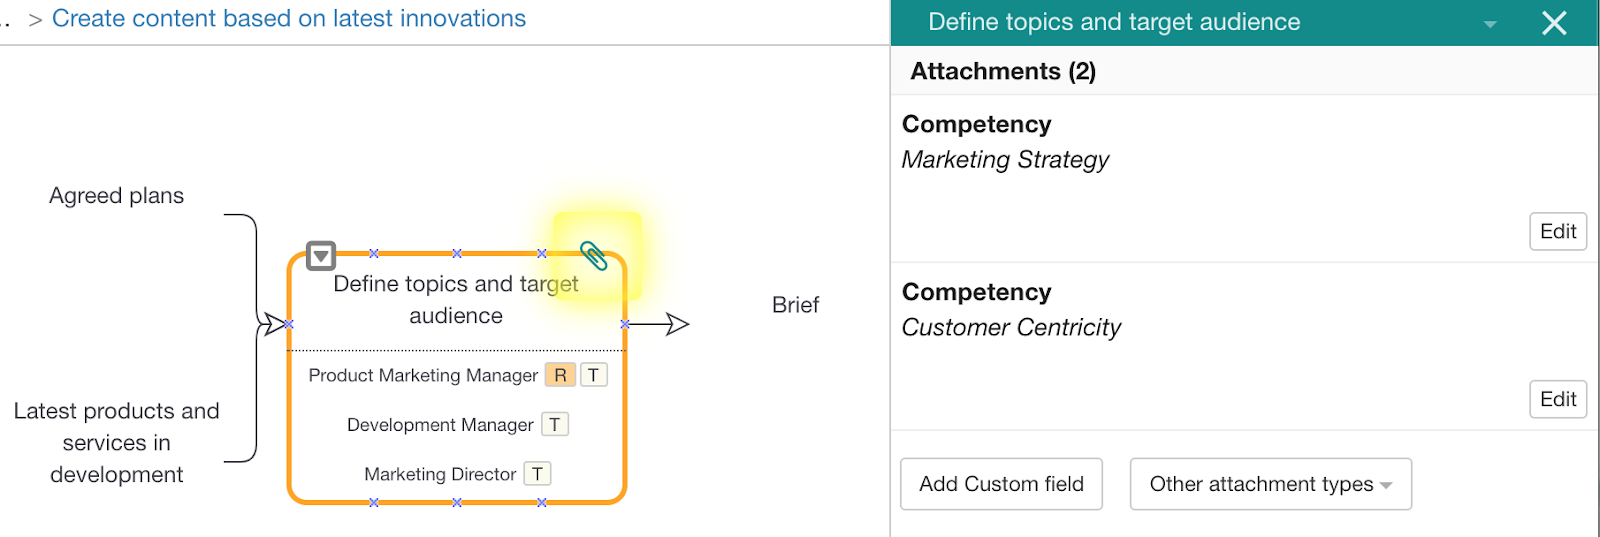 Screenshot shows the individual competencies that can be added to a what box in Skore